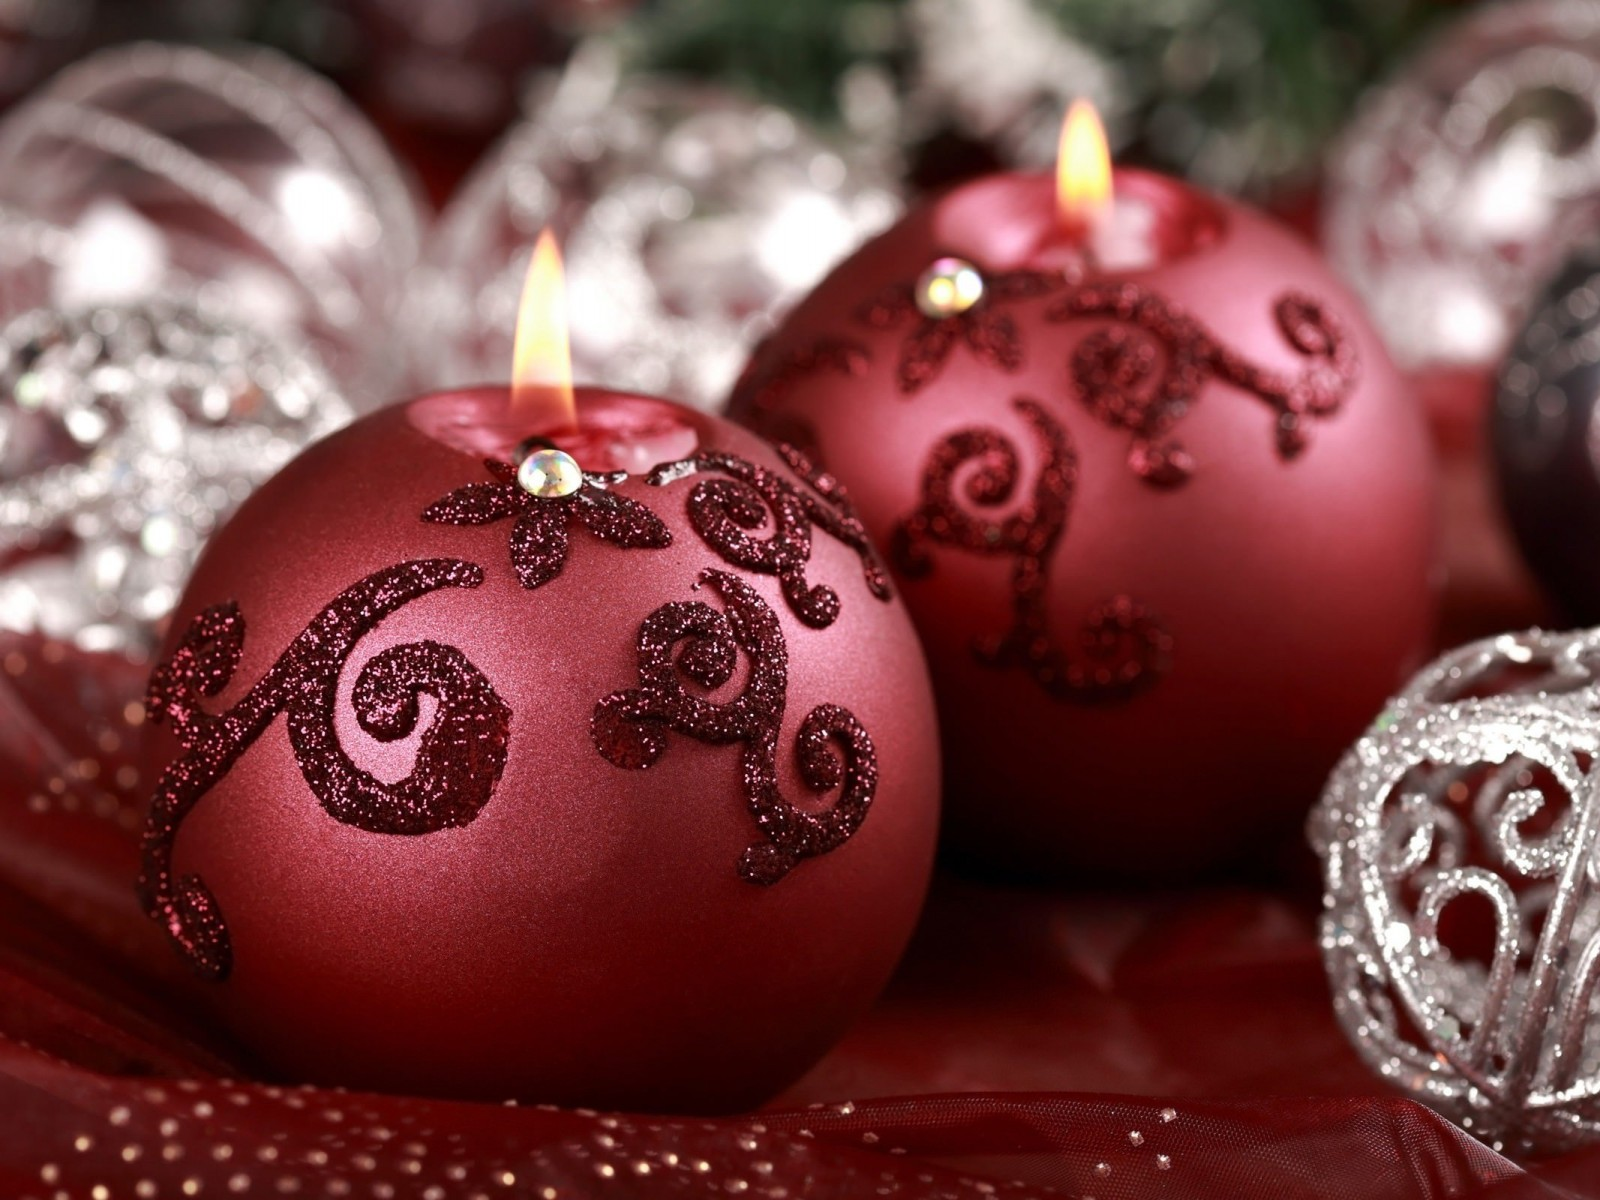 Red Christmas Ornament Ball Candles Wallpaper for Desktop 1600x1200